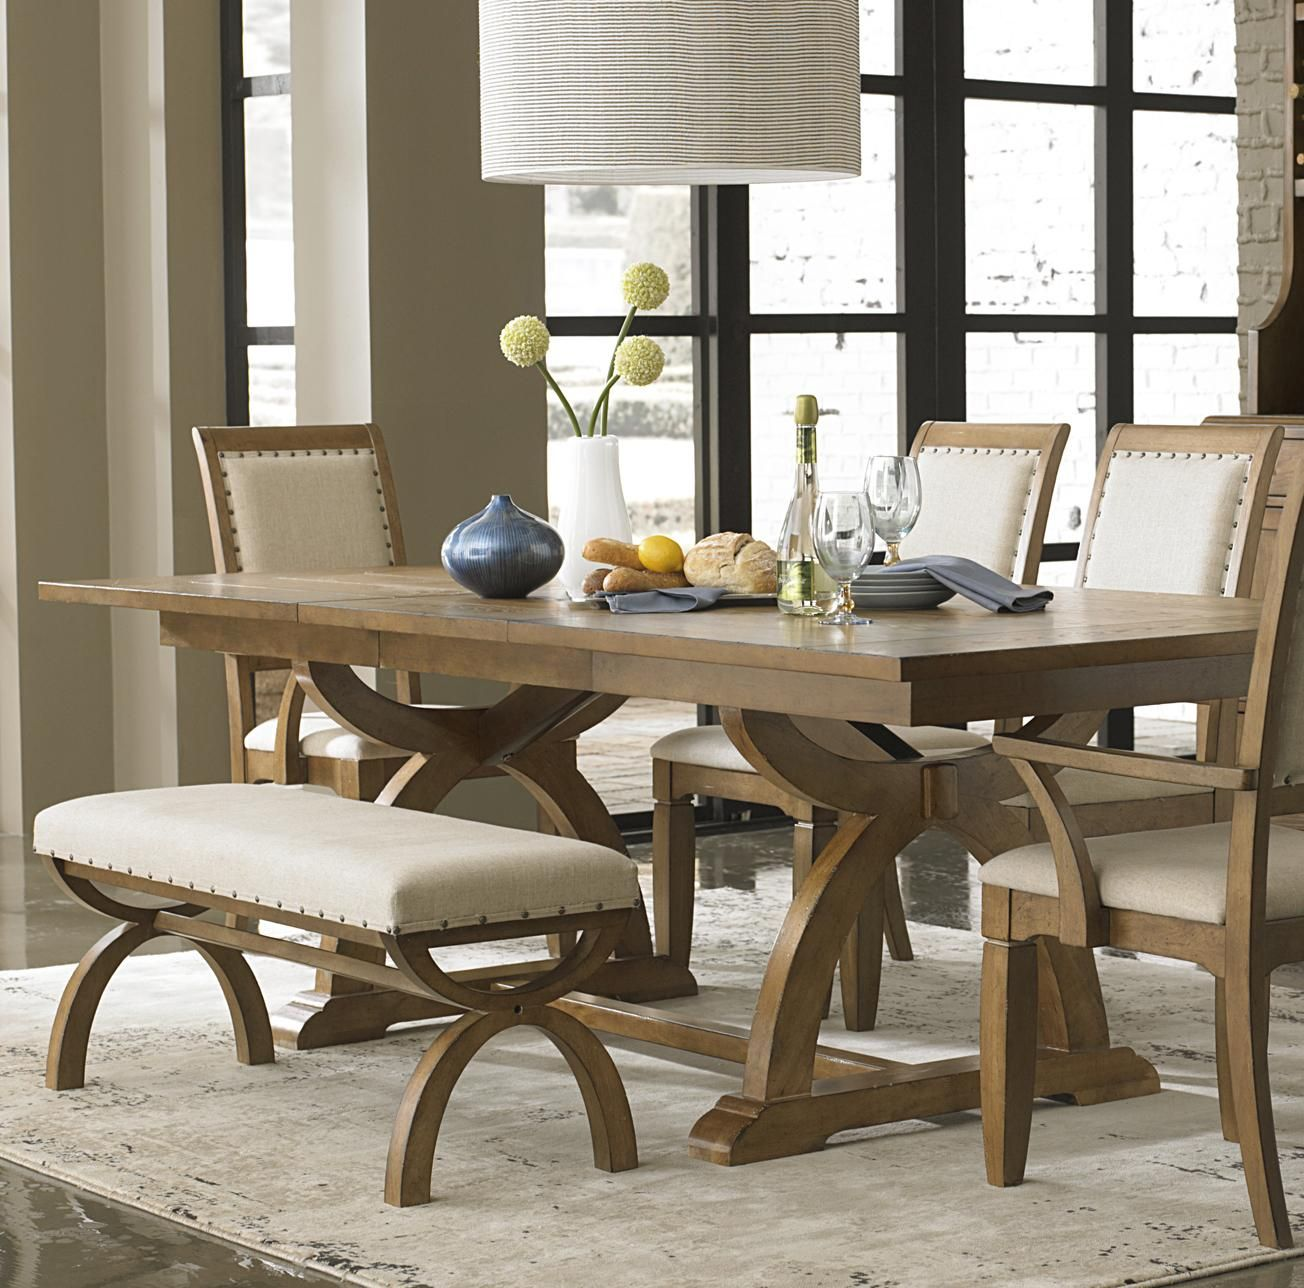 Beautiful Kitchen Table With Bench Seating And Chairs